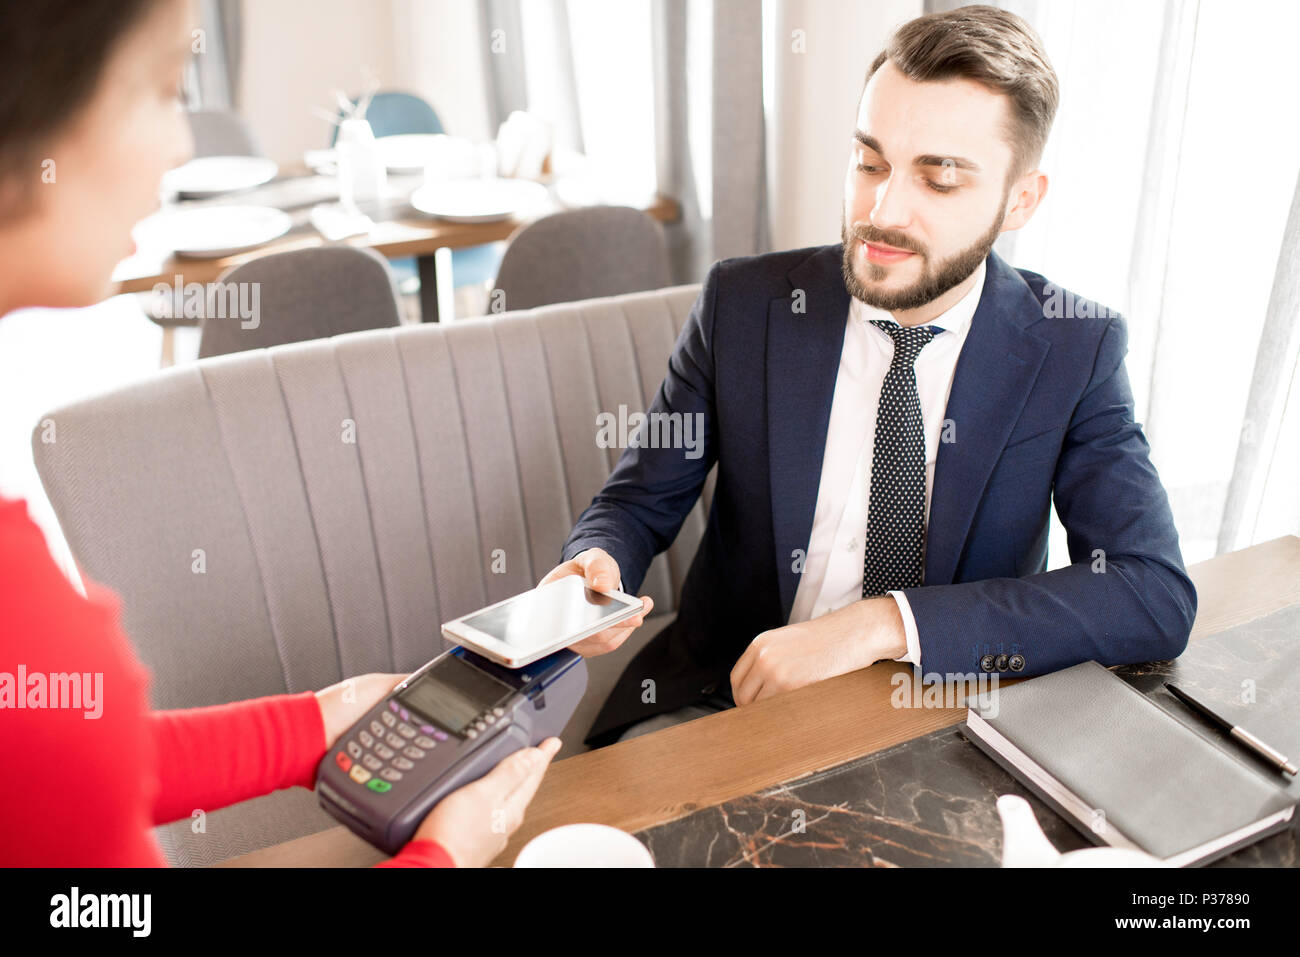 Businessman paying for lunch with smartphone - Stock Image